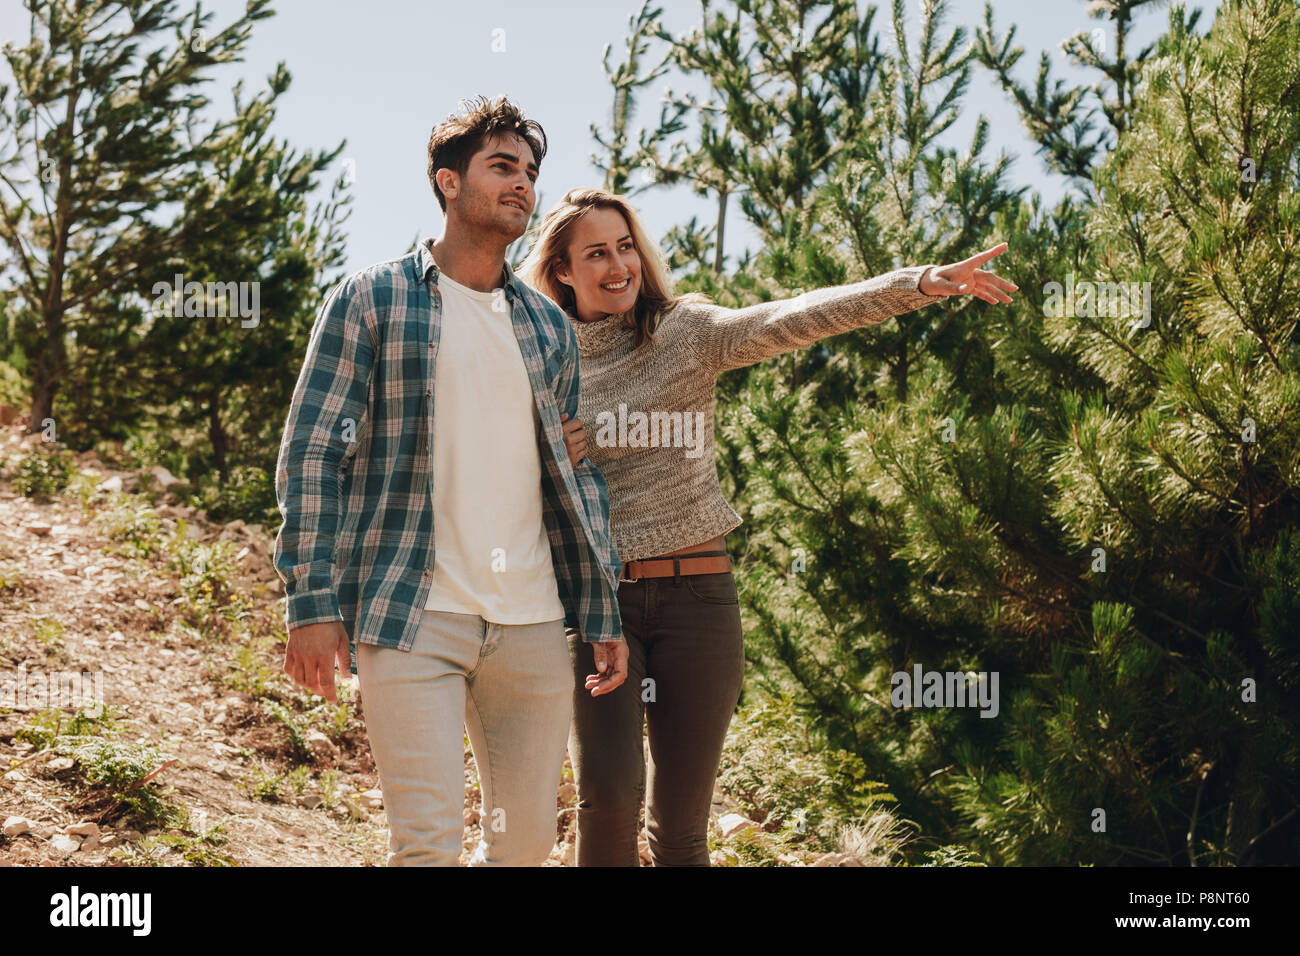 Young man and woman walking in mountain rail with woman pointing at a view. Couple looking at a beautiful view while hiking in nature. - Stock Image